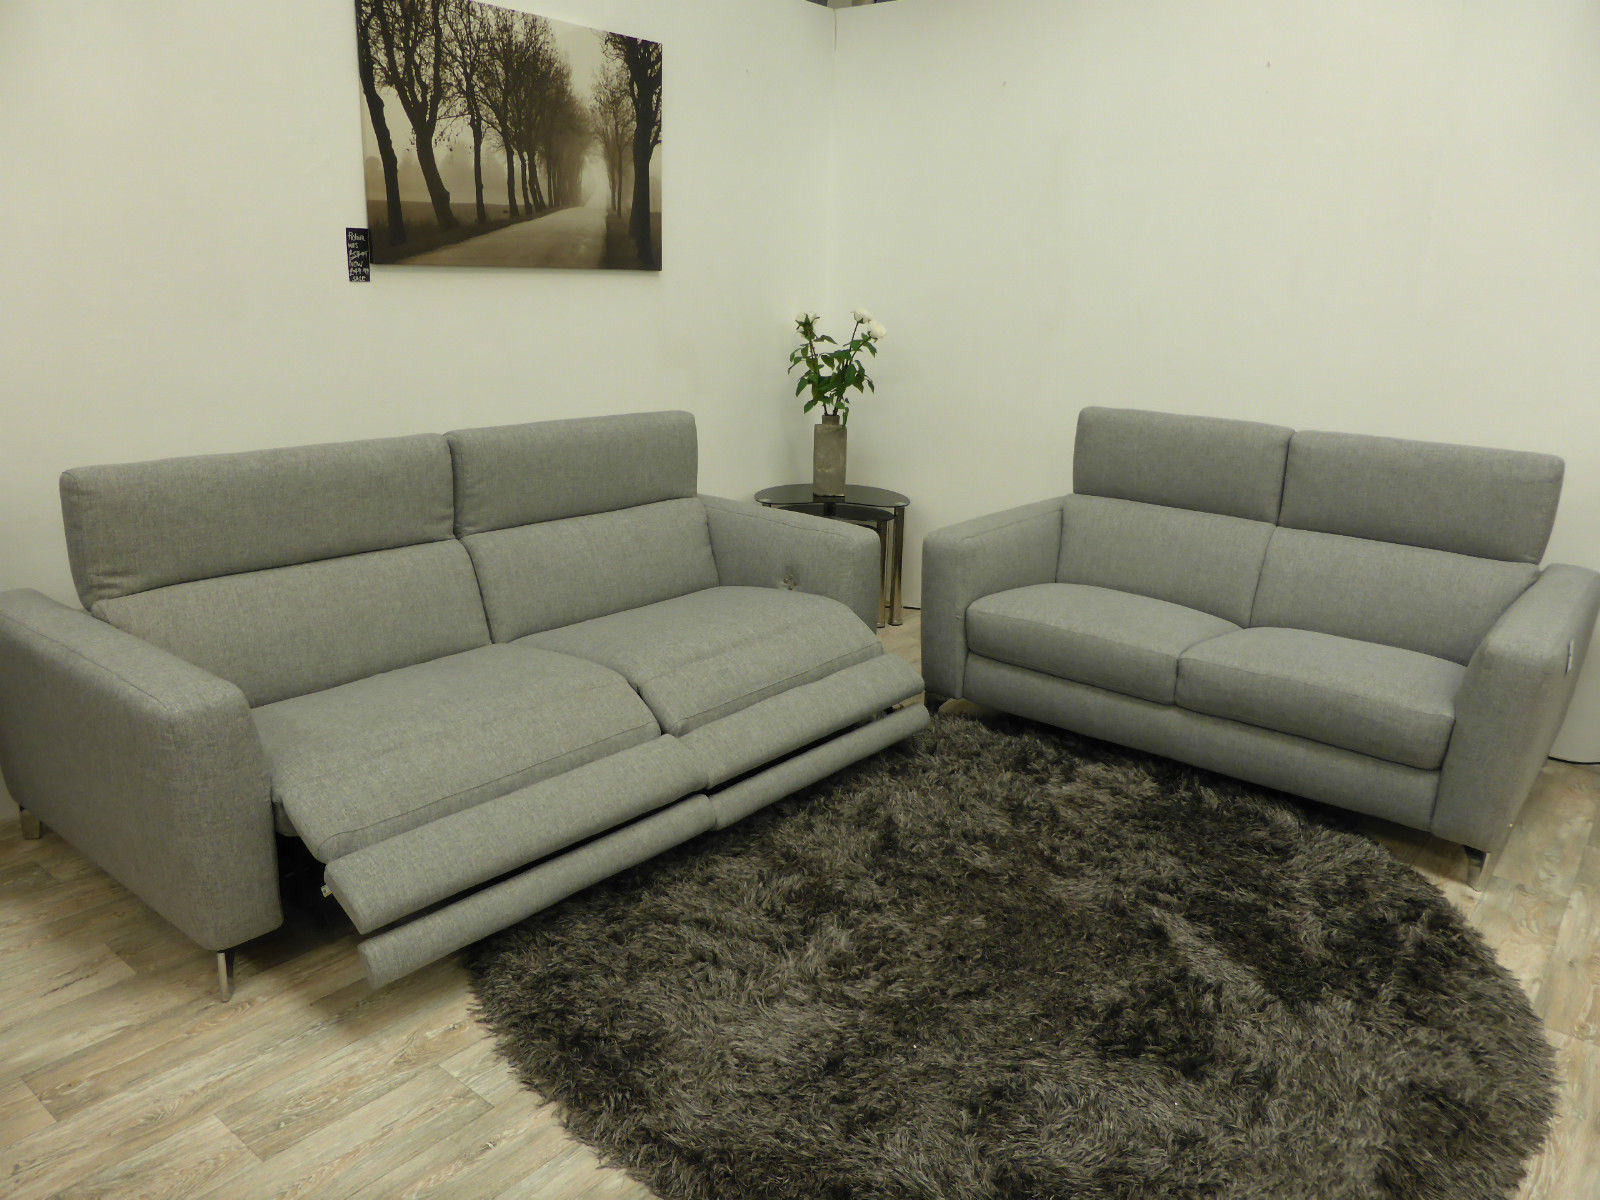 natuzzi italia volo cloth sofa 3 2 seater furnimax brands outlet. Black Bedroom Furniture Sets. Home Design Ideas